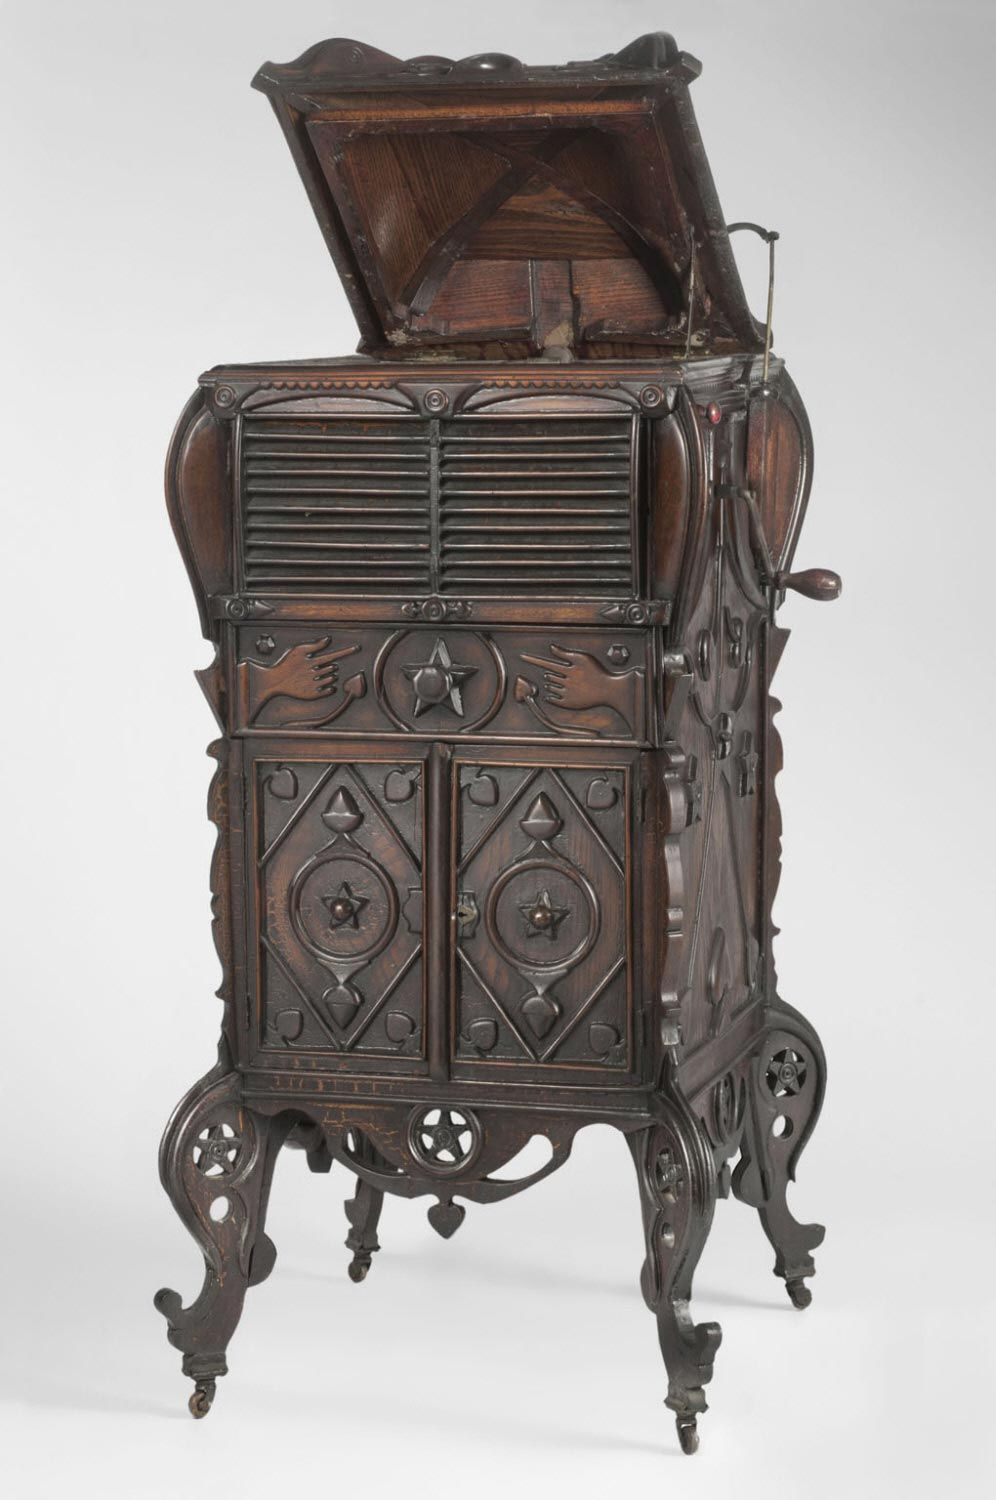 Victrola Cabinet William Plummer 1915-30 - Victrola Cabinet William Plummer 1915-30 Furniture: Antique To